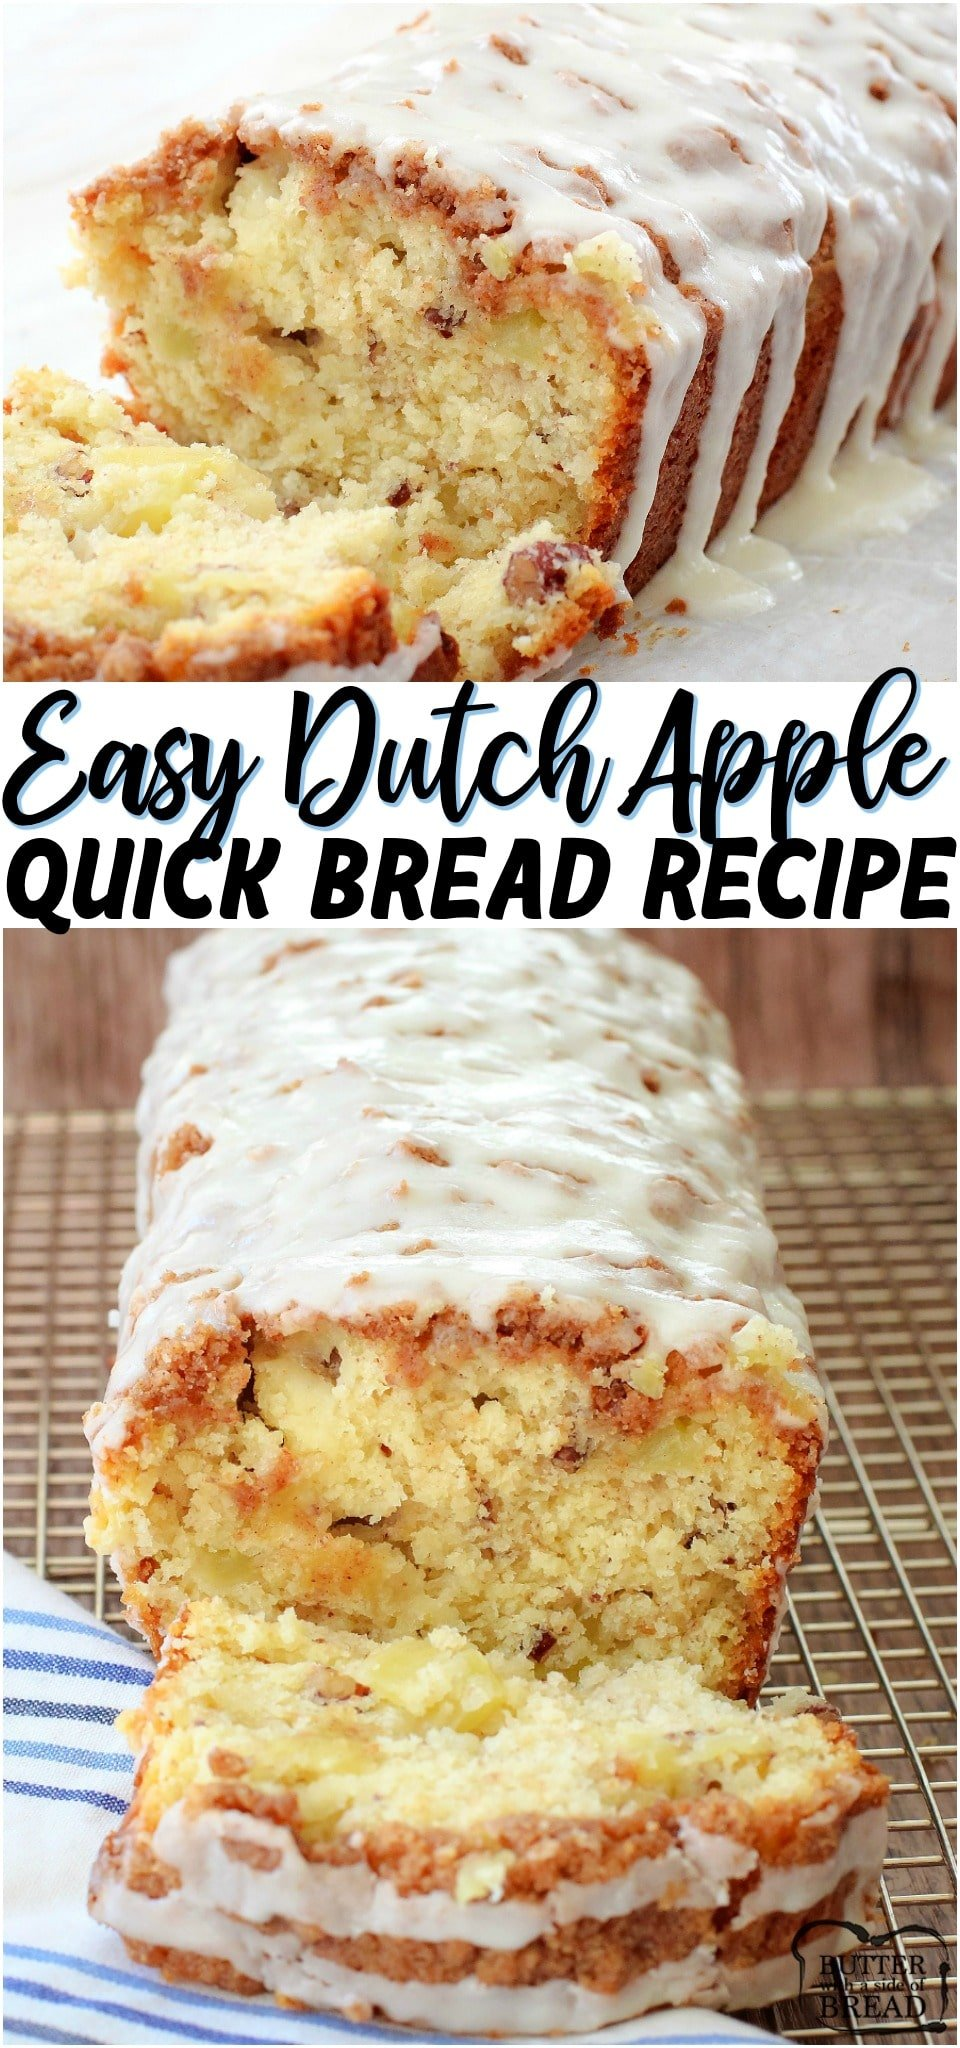 Dutch Apple Bread made from scratch with butter, sugar & fresh apples. Amazing flavor in this apple quick bread recipe topped with a cinnamon streusel & drizzled with warm vanilla glaze. #bread #quickbread #baking #apples #sweetbread #applerecipe #comfortfood from BUTTER WITH A SIDE OF BREAD